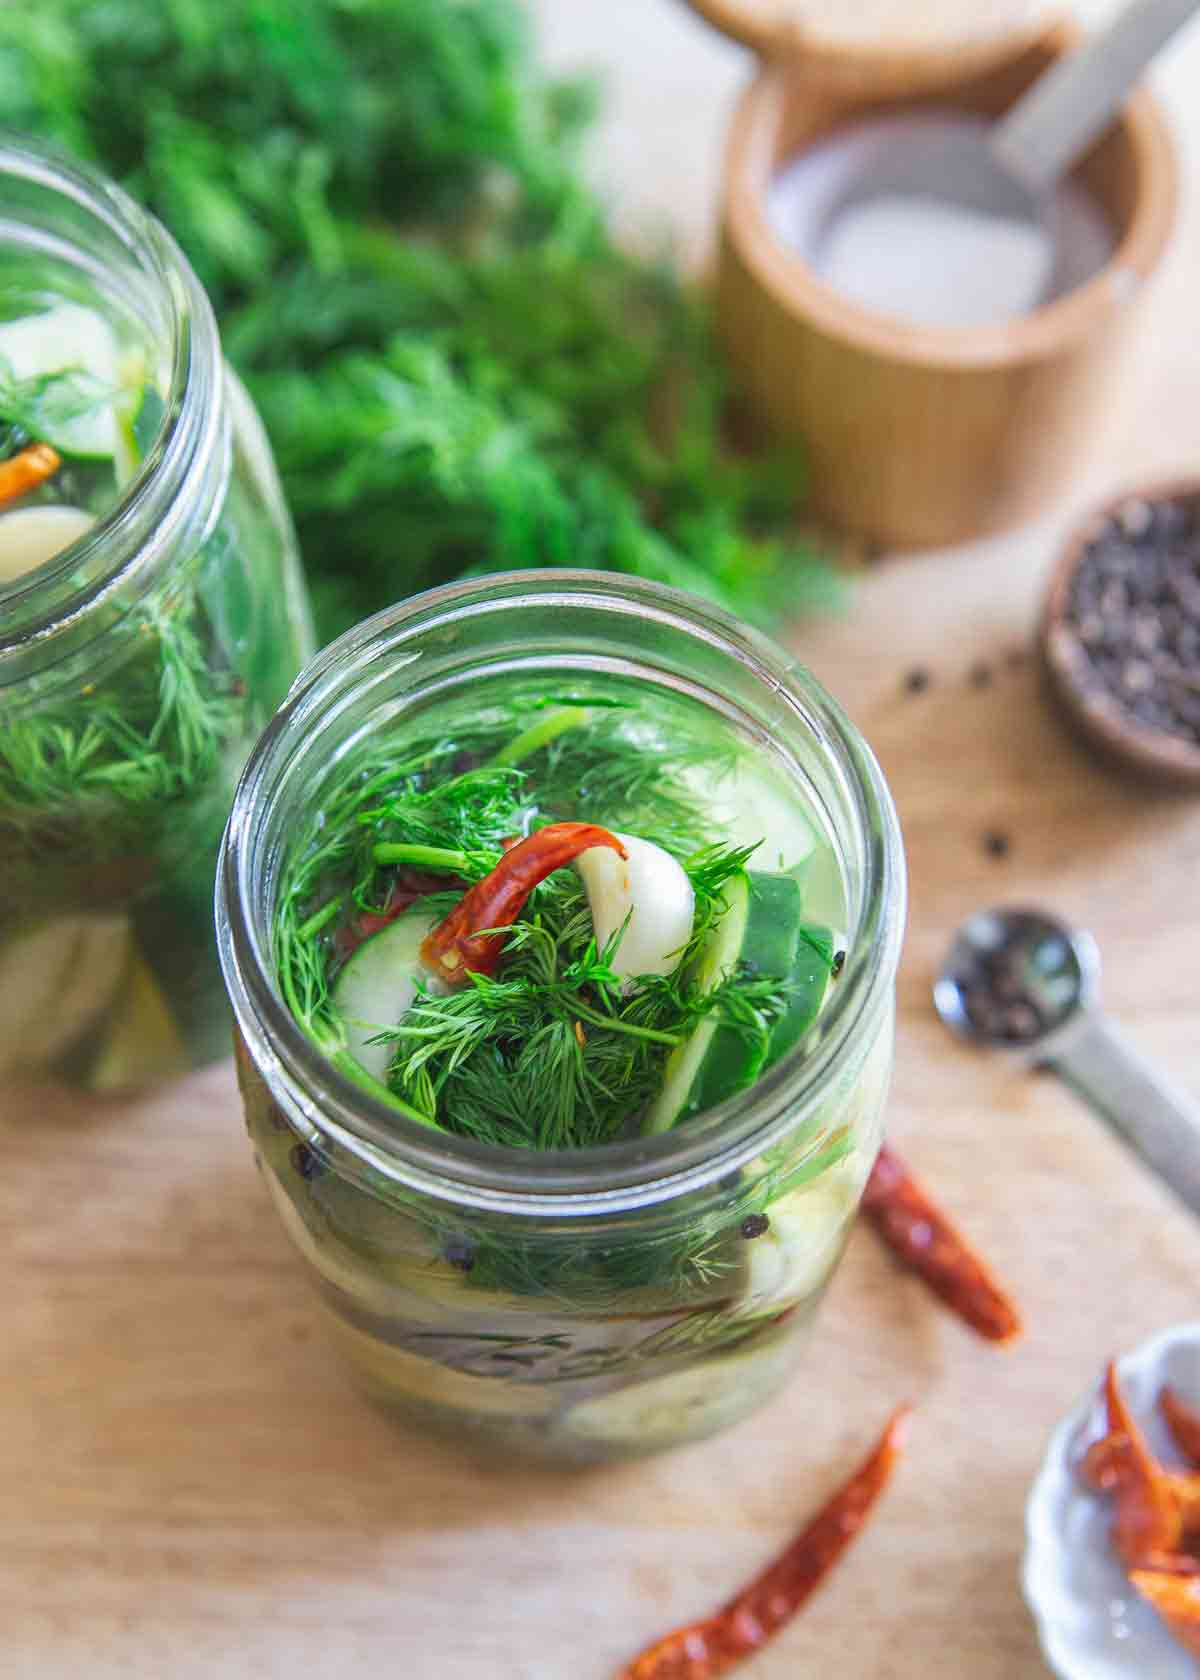 Garlic dill refrigerator pickles are so easy to make you'll never need to buy store bought again!